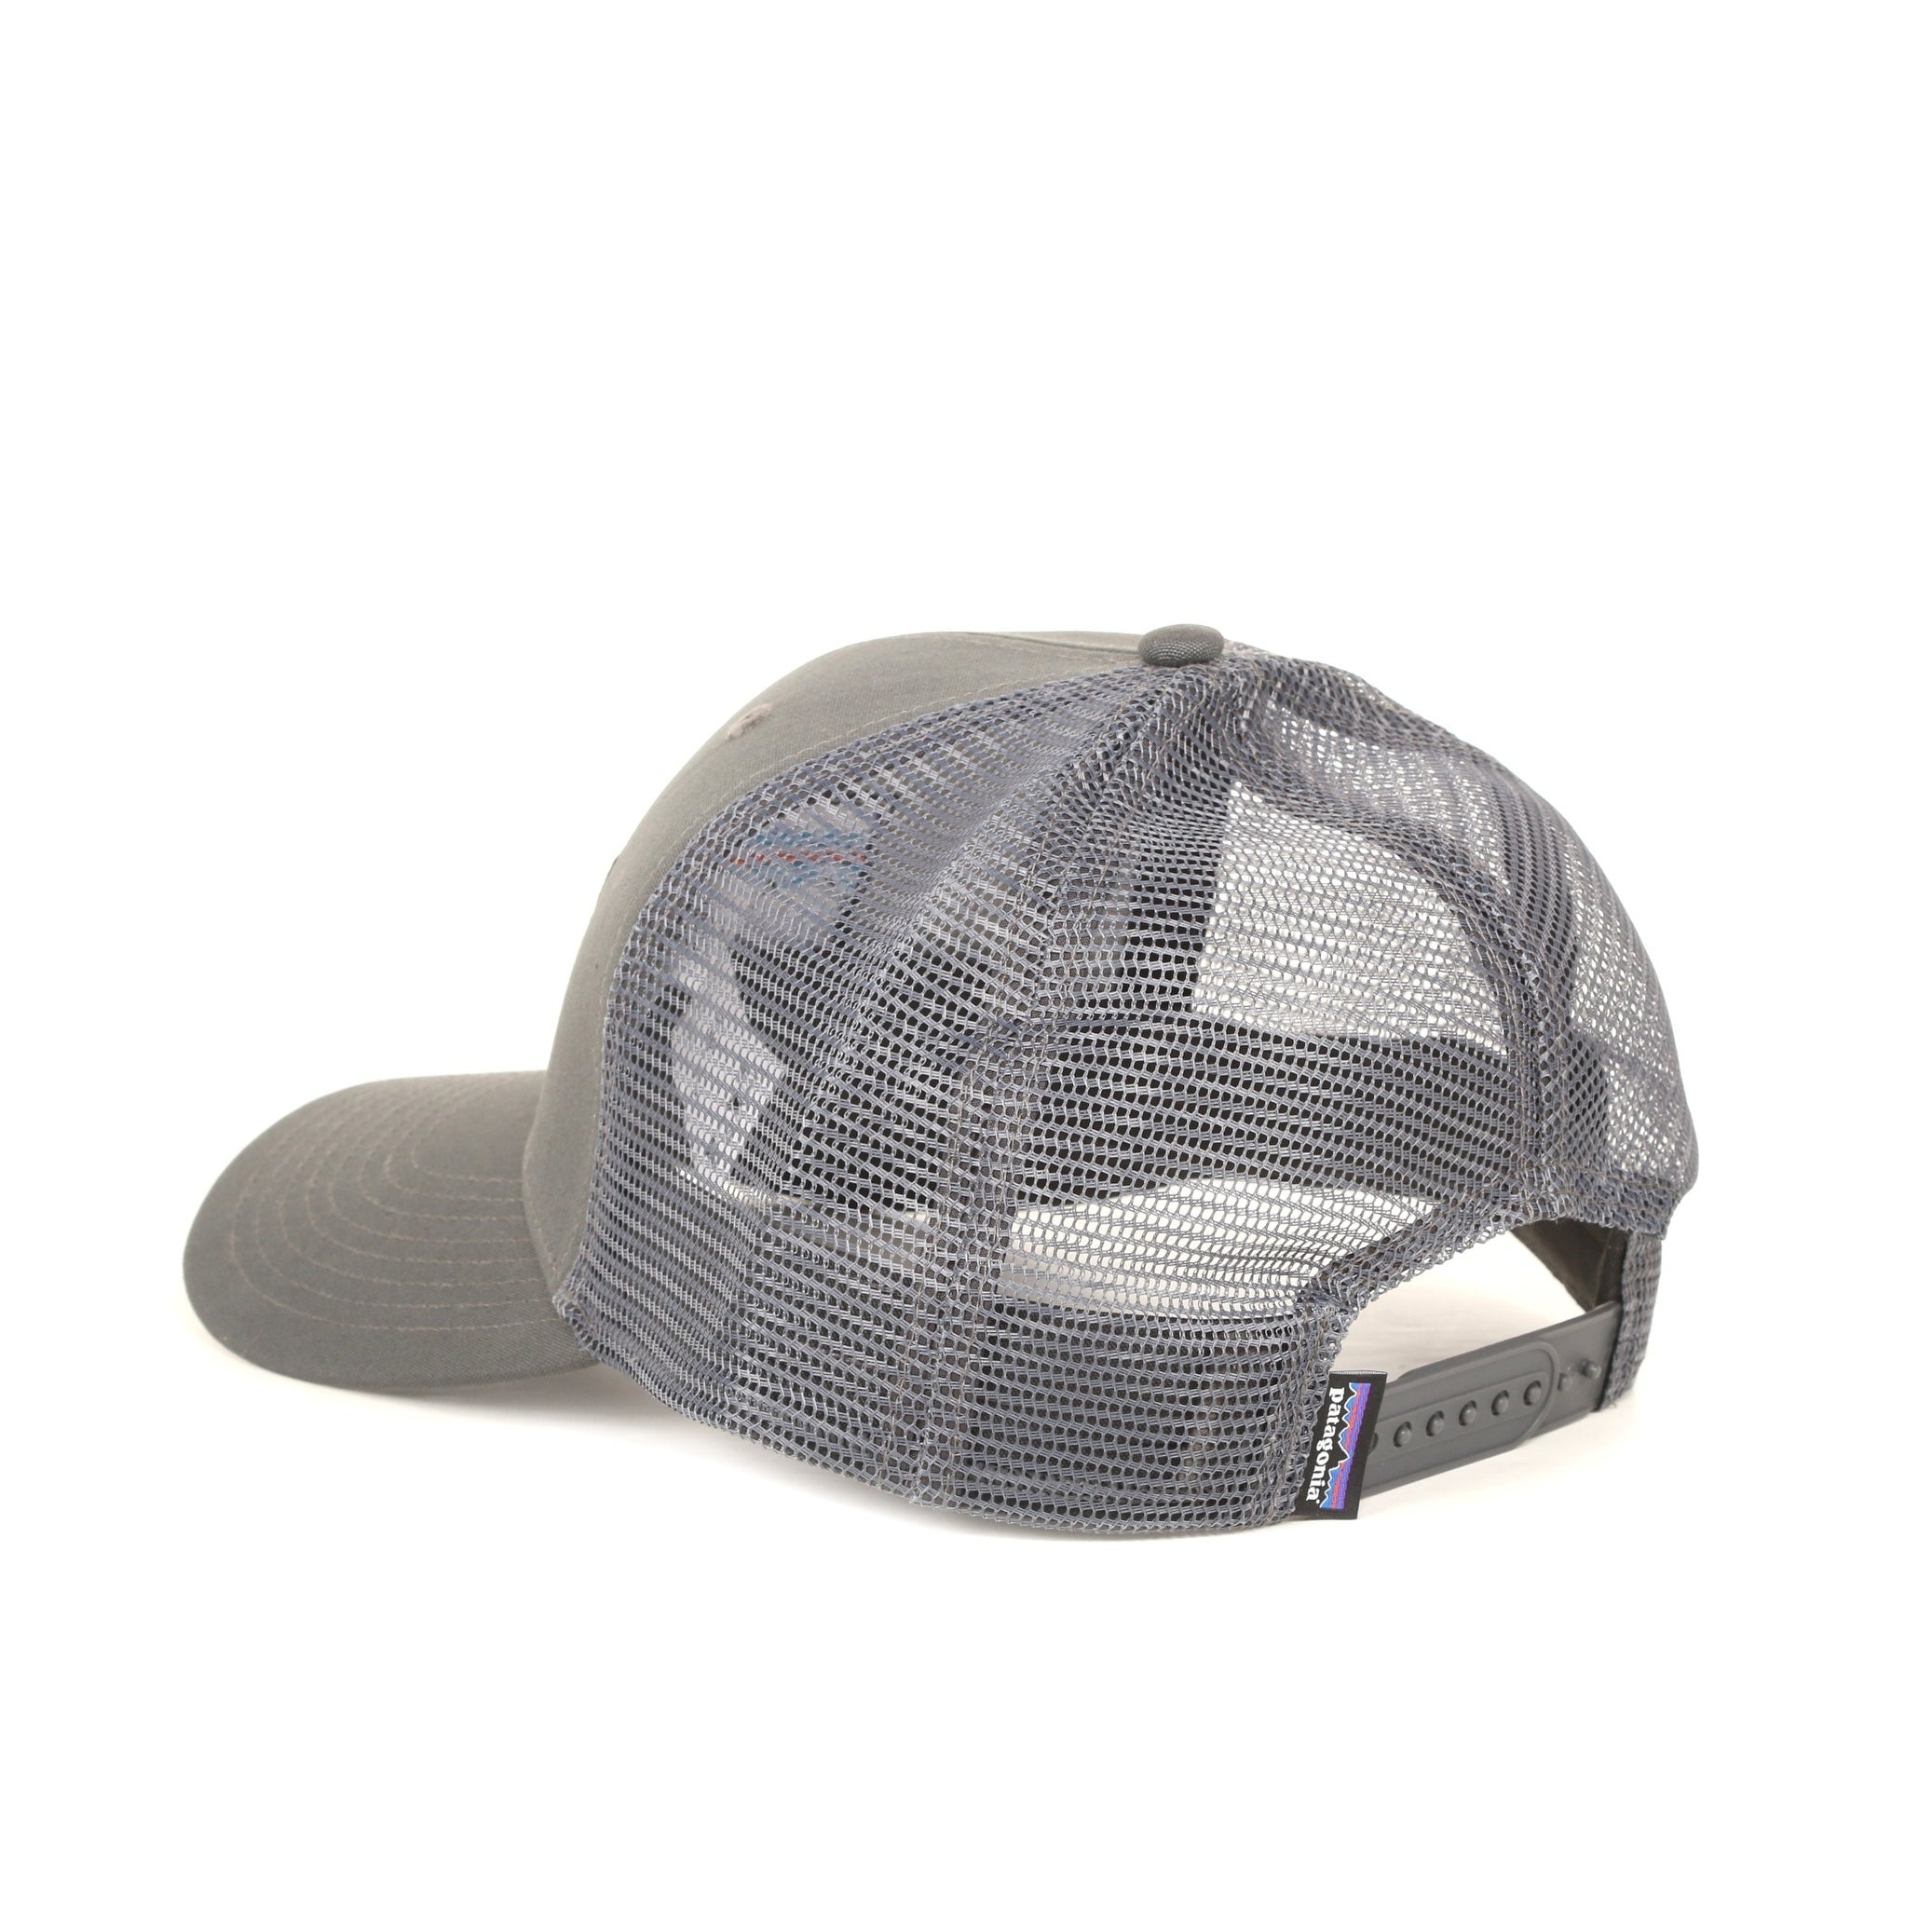 f854bfd68ba Shop Patagonia P-6 Logo LoPro Trucker Hat - Free Shipping On Orders Over   45 - Overstock - 18904996